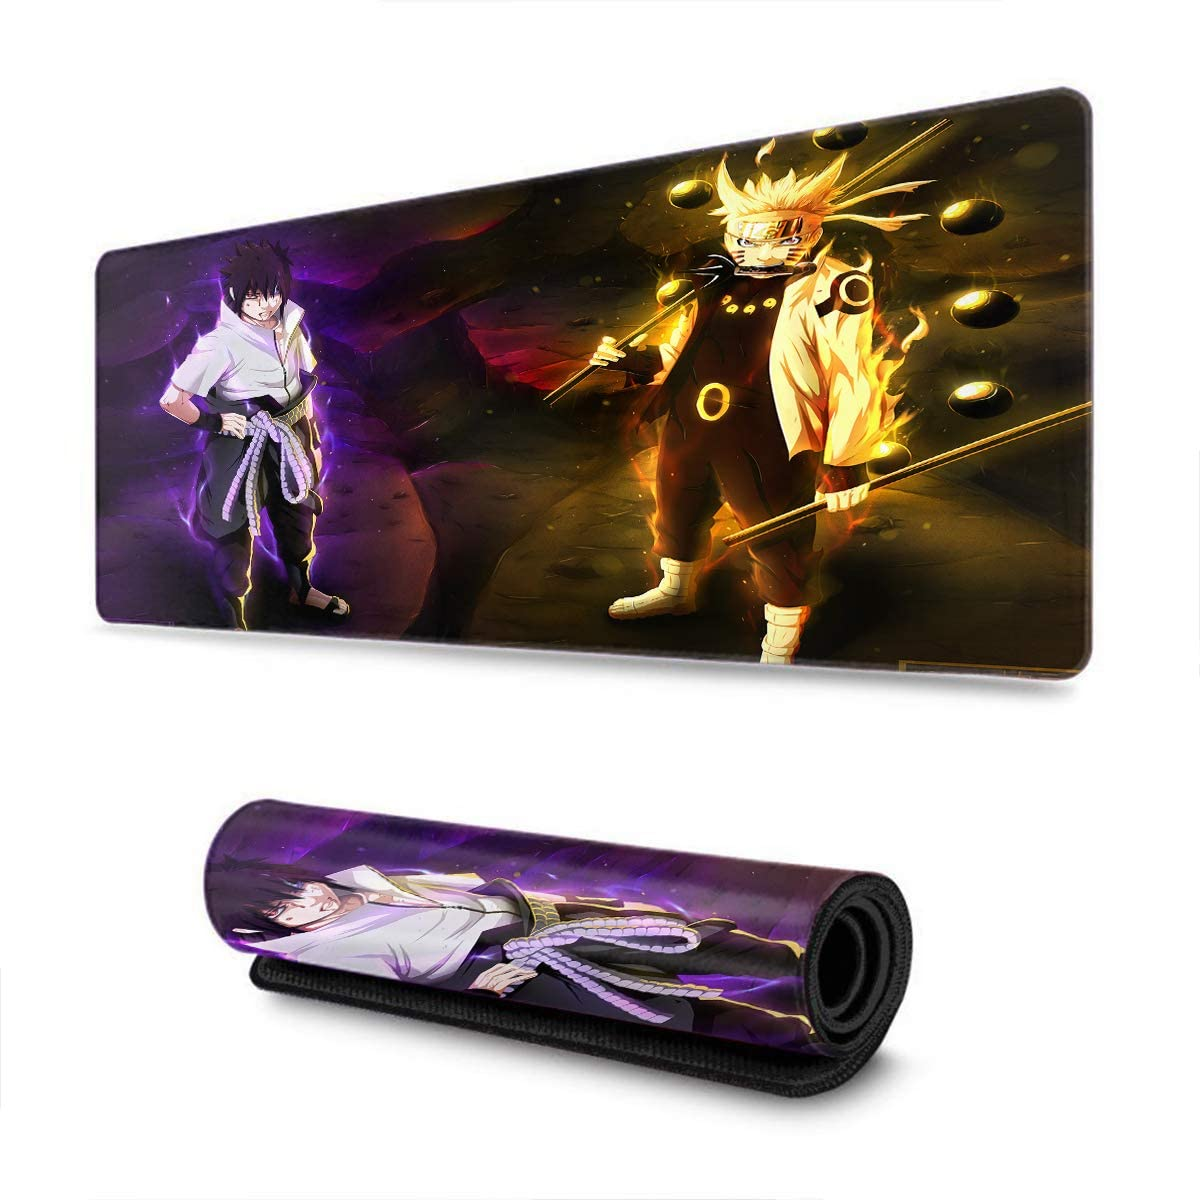 Extended Size Professional Gaming Mouse Pad Computer Keyboard Mouse Mat for Uzumaki Naruto Kakashi, Custom Design Waterproof Non-Slip Rubber Ultra Thick 3mm-11.8x31.5x0.2 in